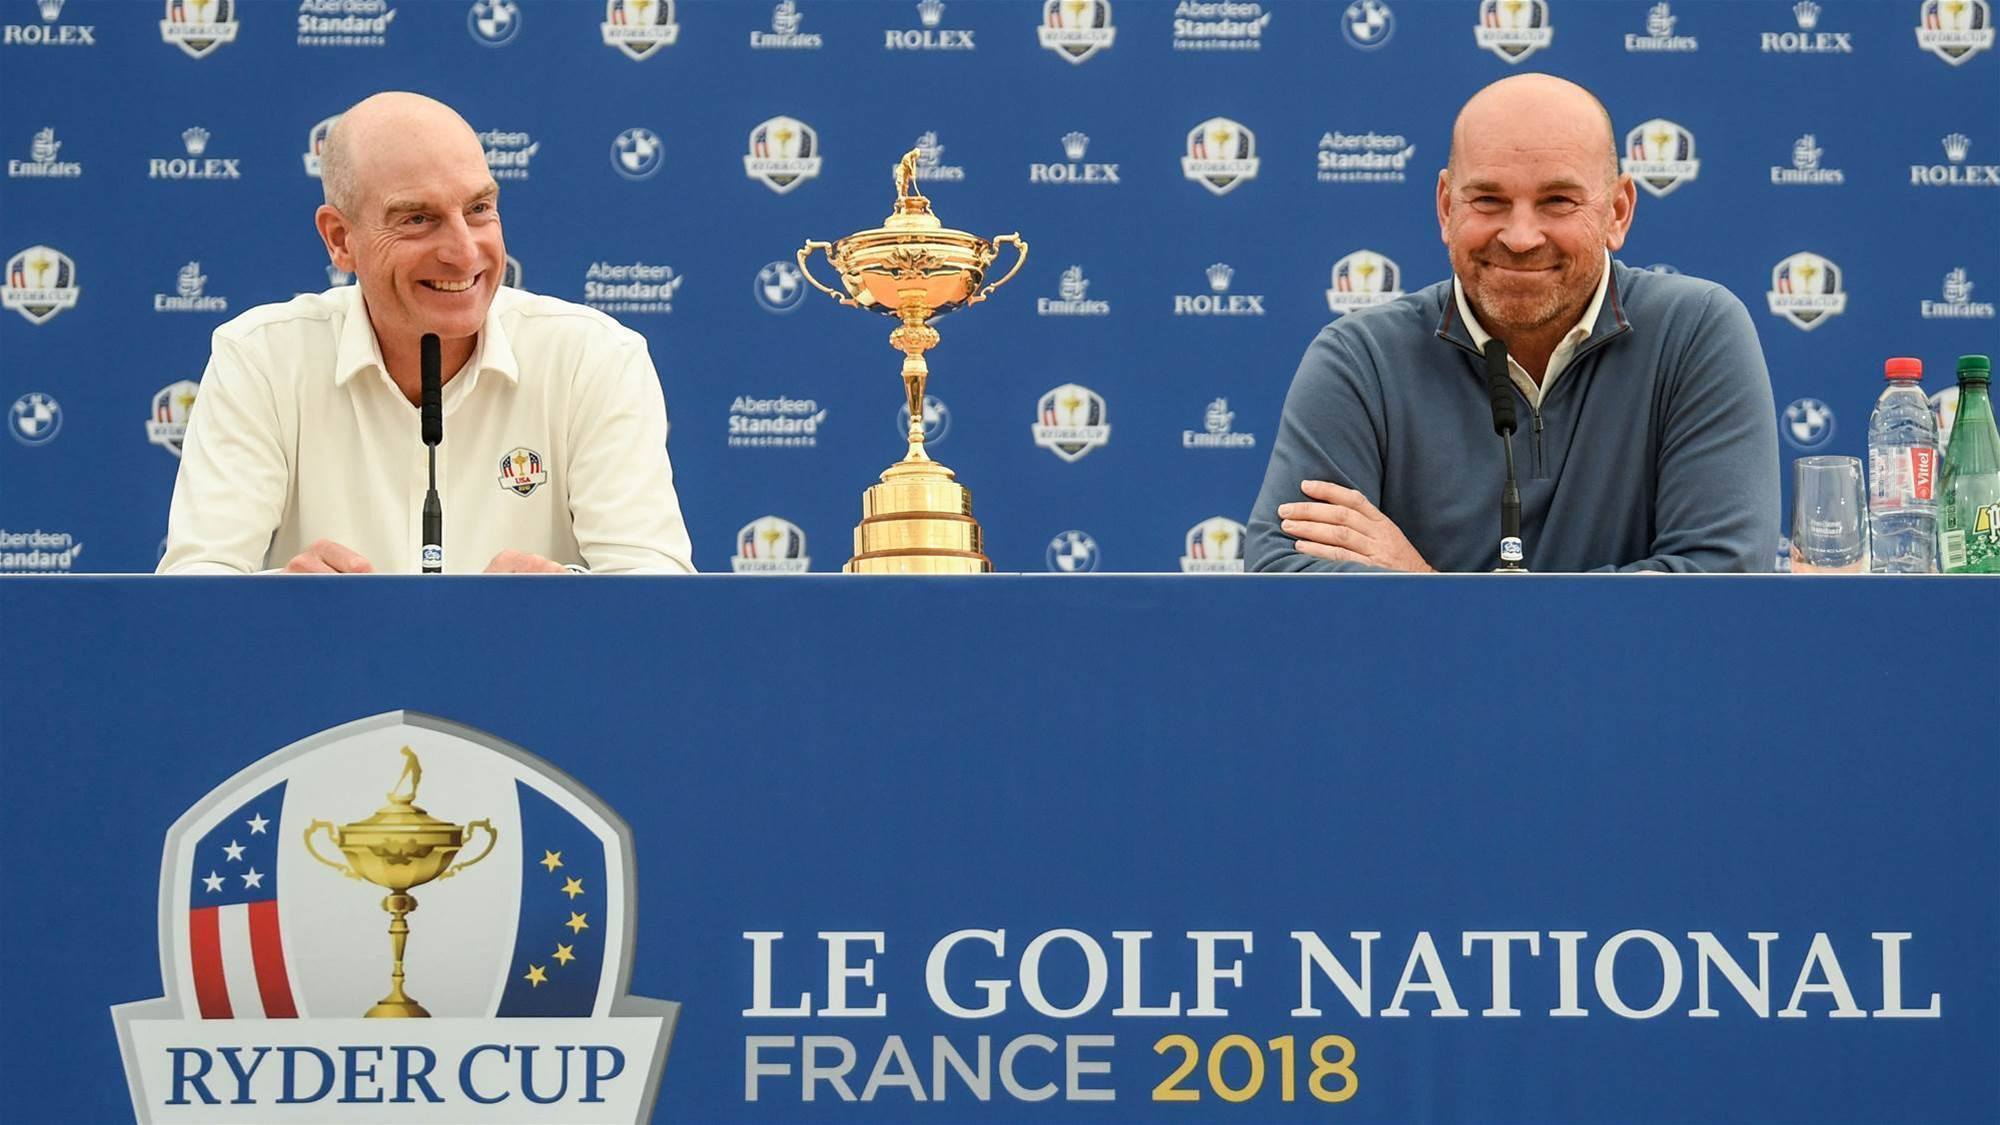 Ryder Cup: Skippers praise rival teams